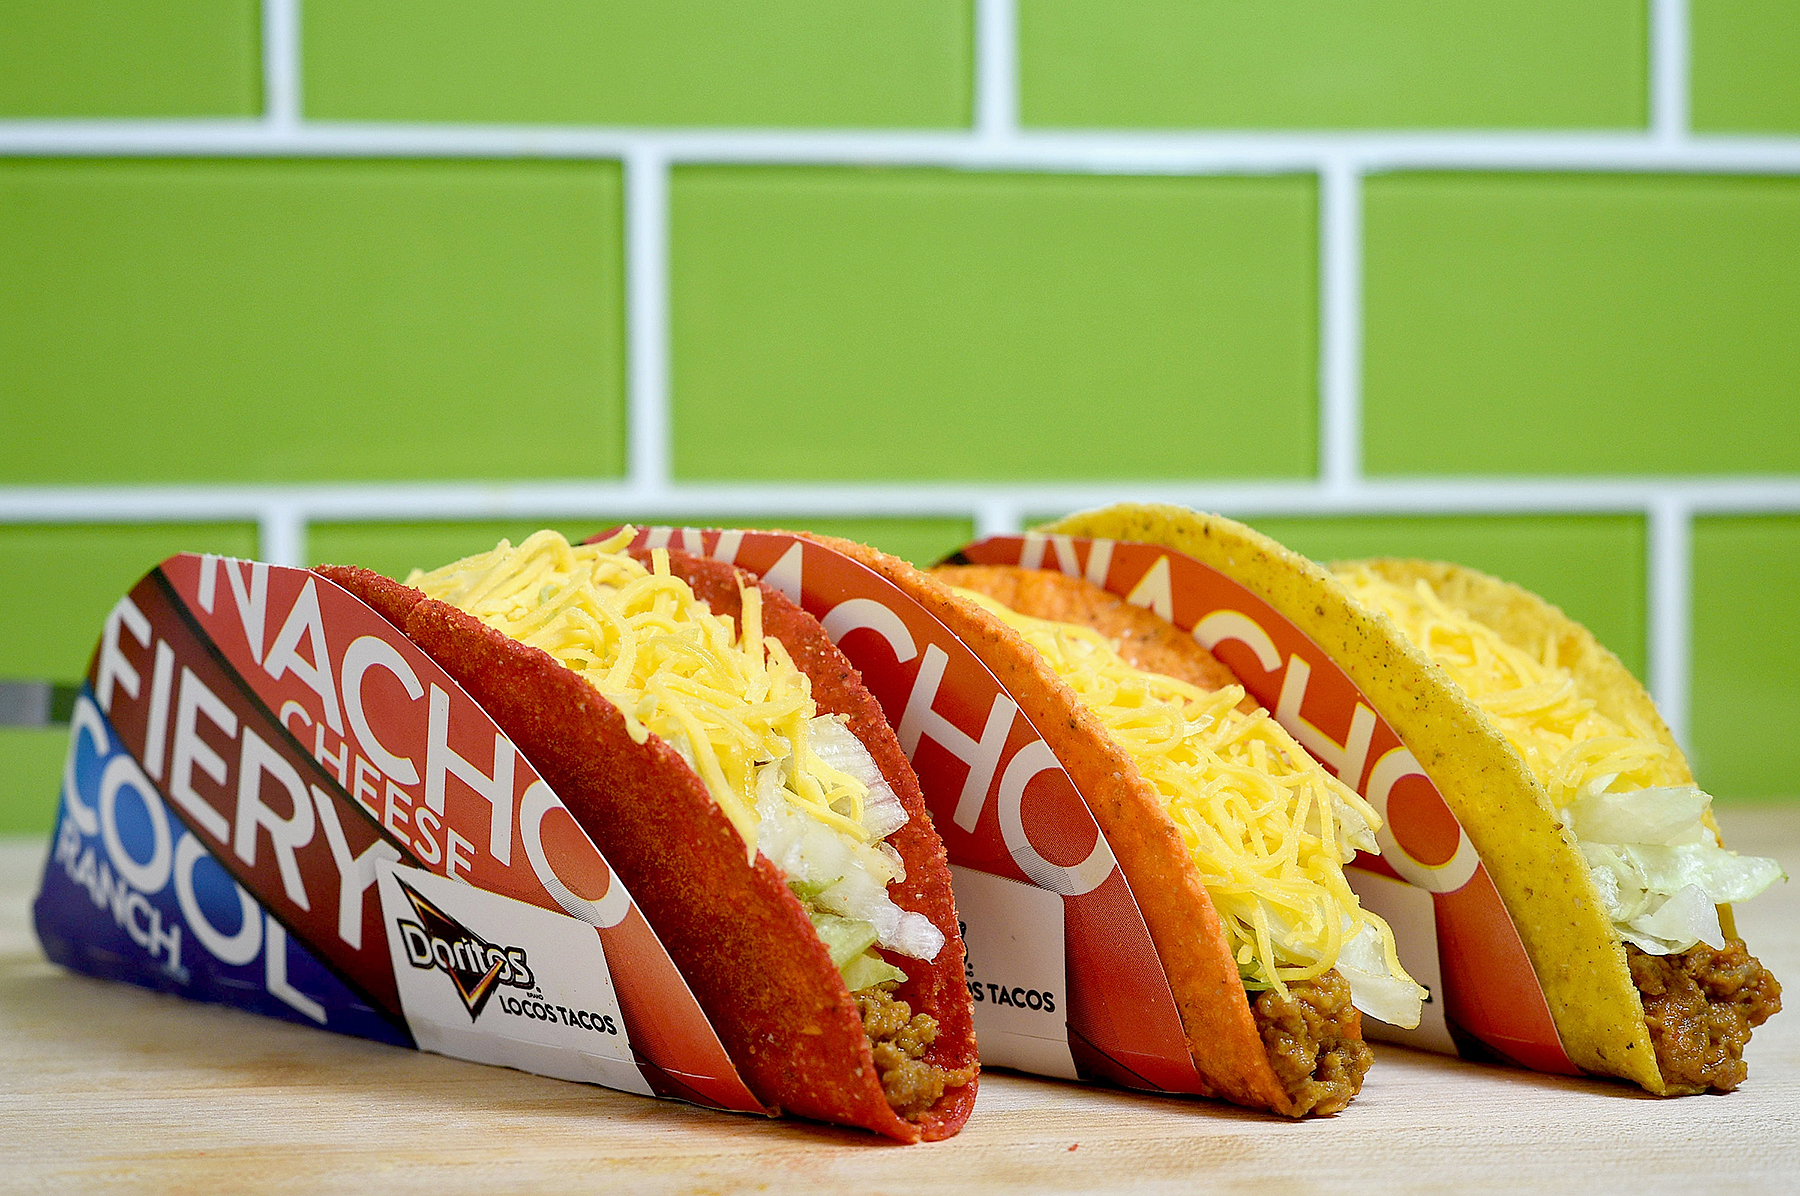 Free Taco Bell tacos coming Wednesday - thanks to the Golden State Warriors